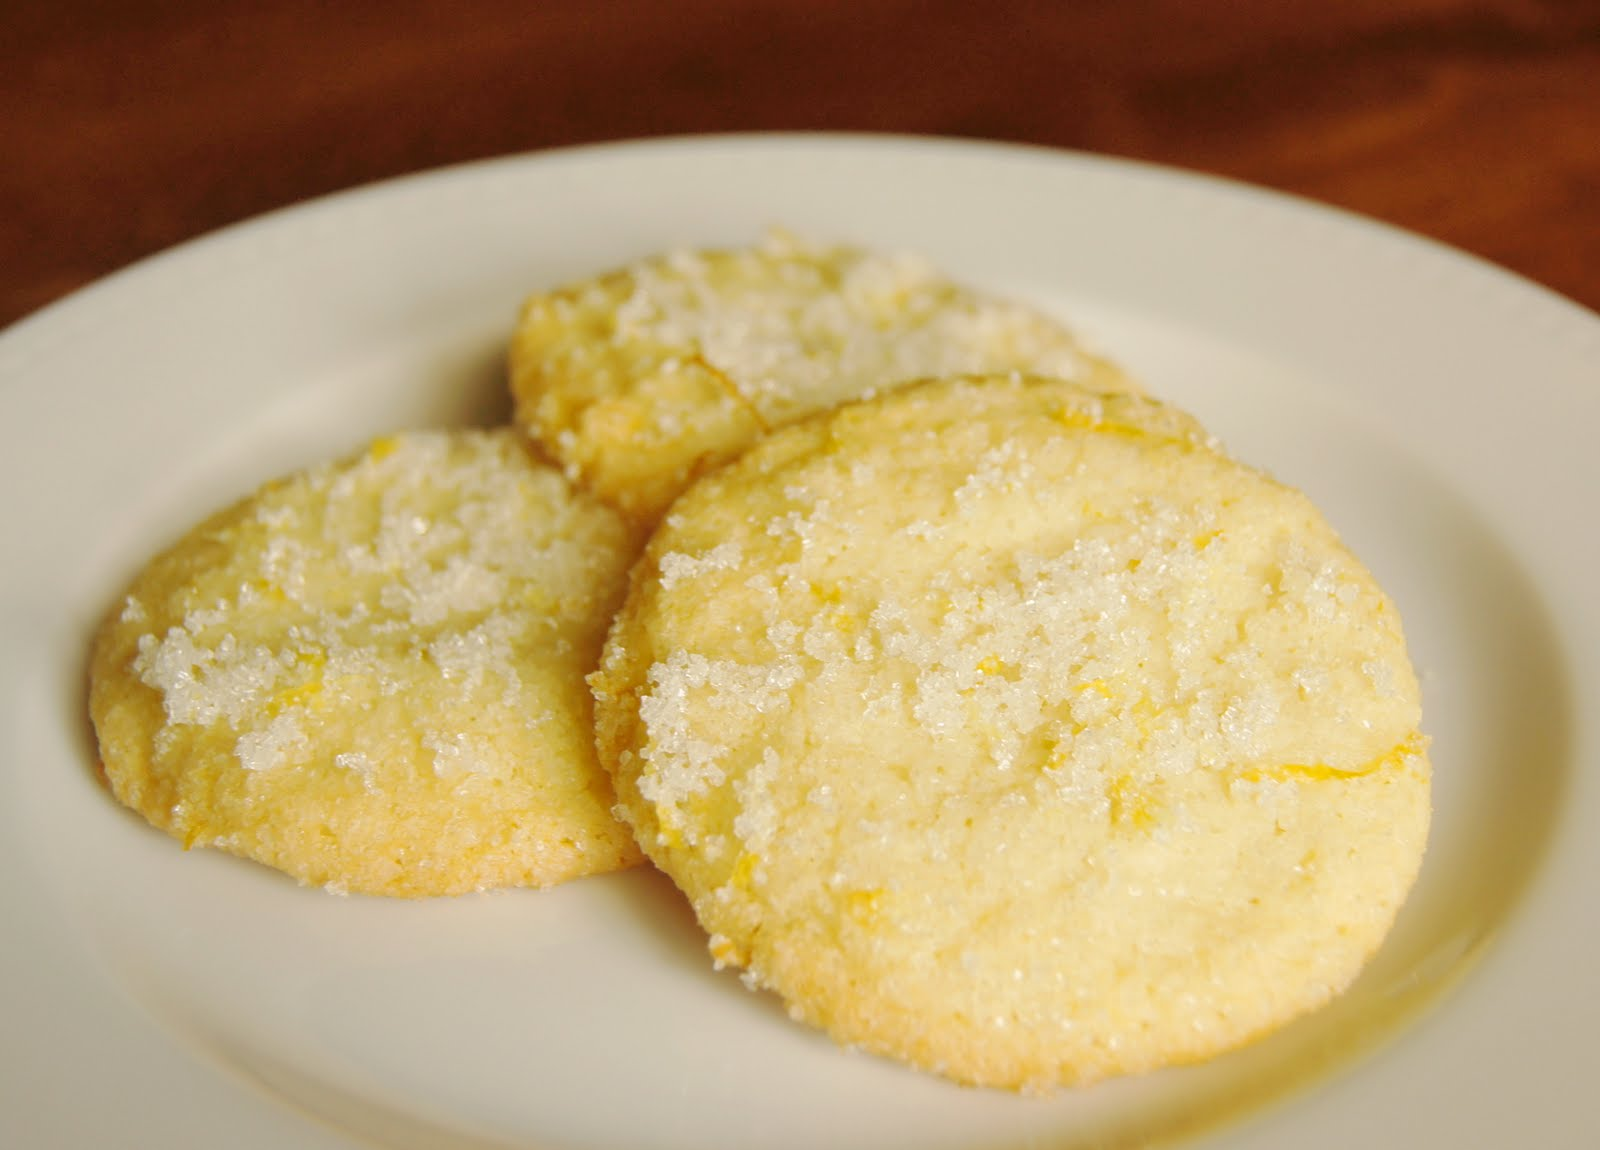 ... Like a Snickerdoodle in New Clothes: Giant Chewy Lemon Sugar Cookies